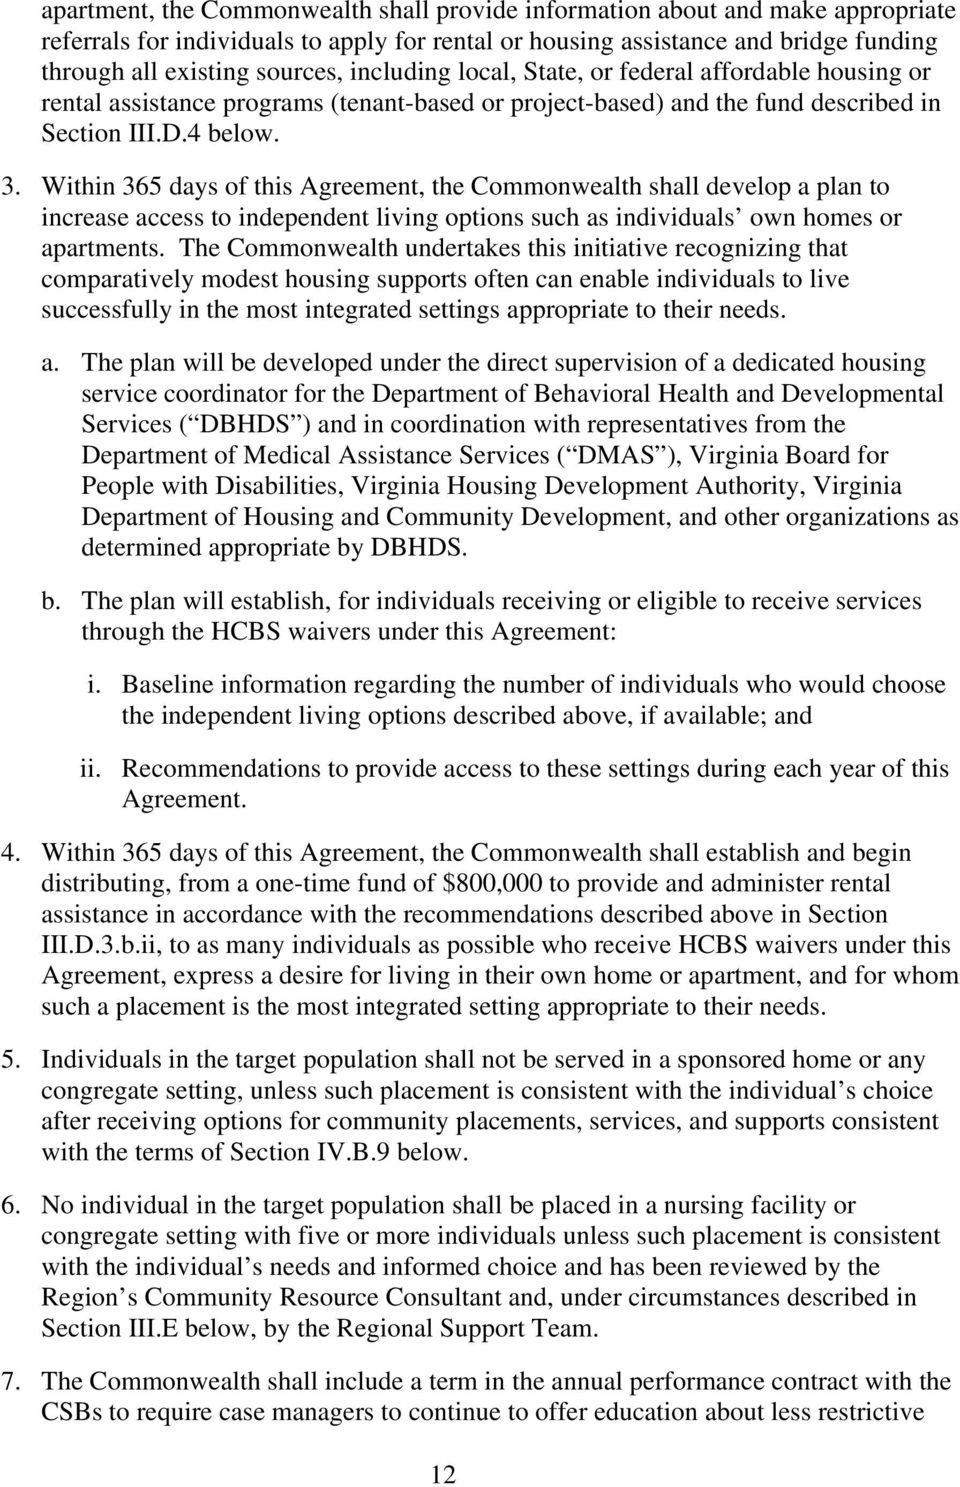 Within 365 days of this Agreement, the Commonwealth shall develop a plan to increase access to independent living options such as individuals own homes or apartments.